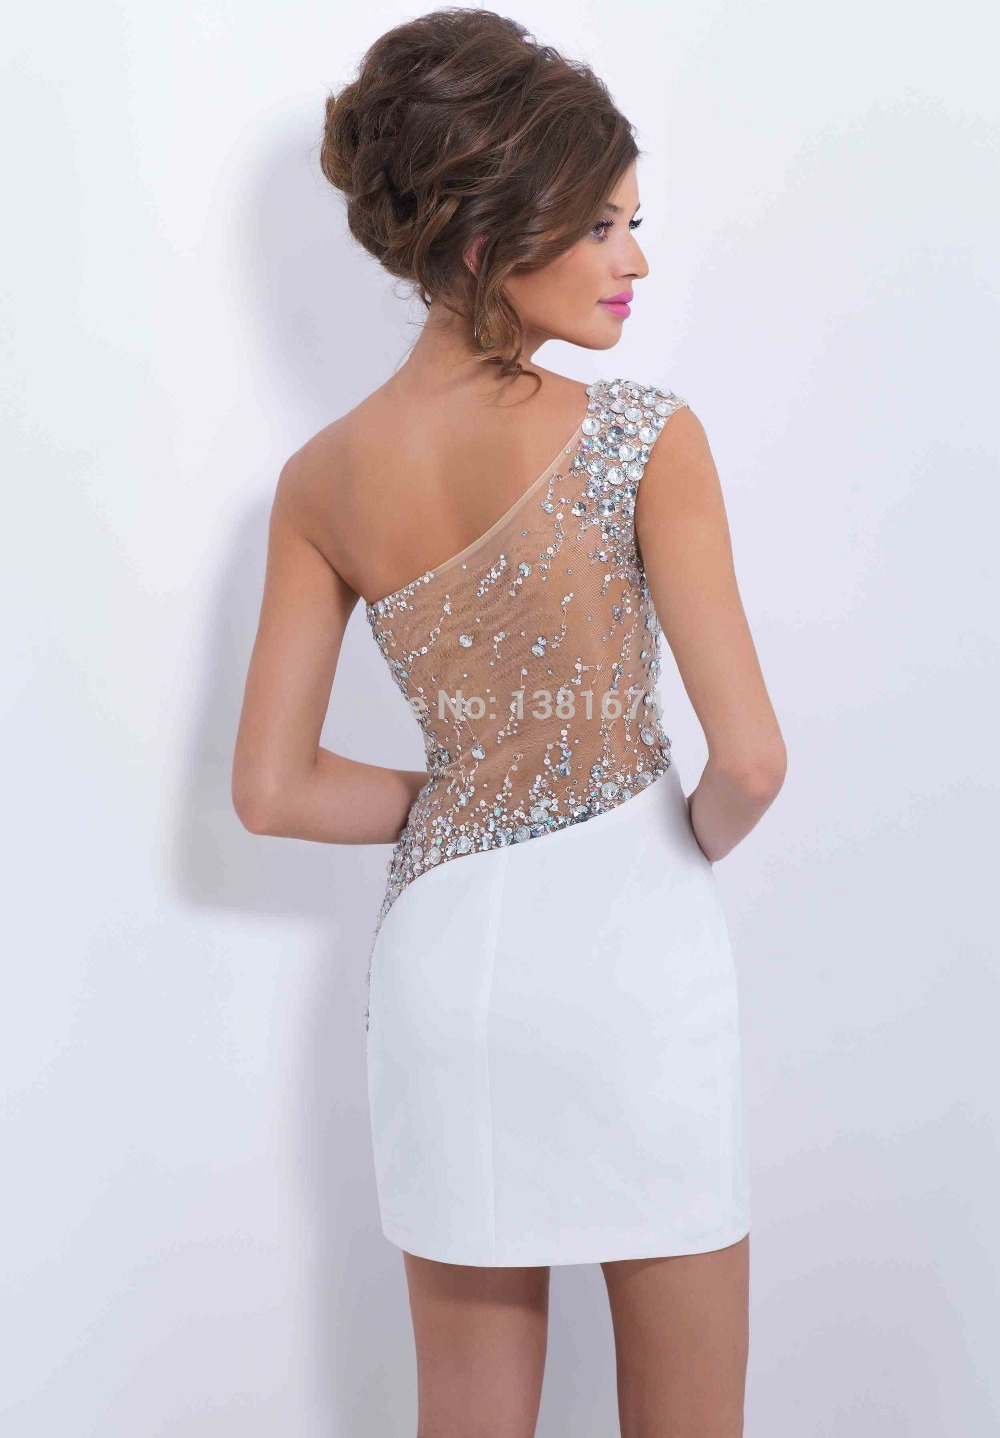 Aliexpress.com : Buy Sexy White Crystal Criss cross Design Fitted Sheath Women Party Dress 2014 from Reliable party dress wholesale suppliers on Aojia Top Evening Dress